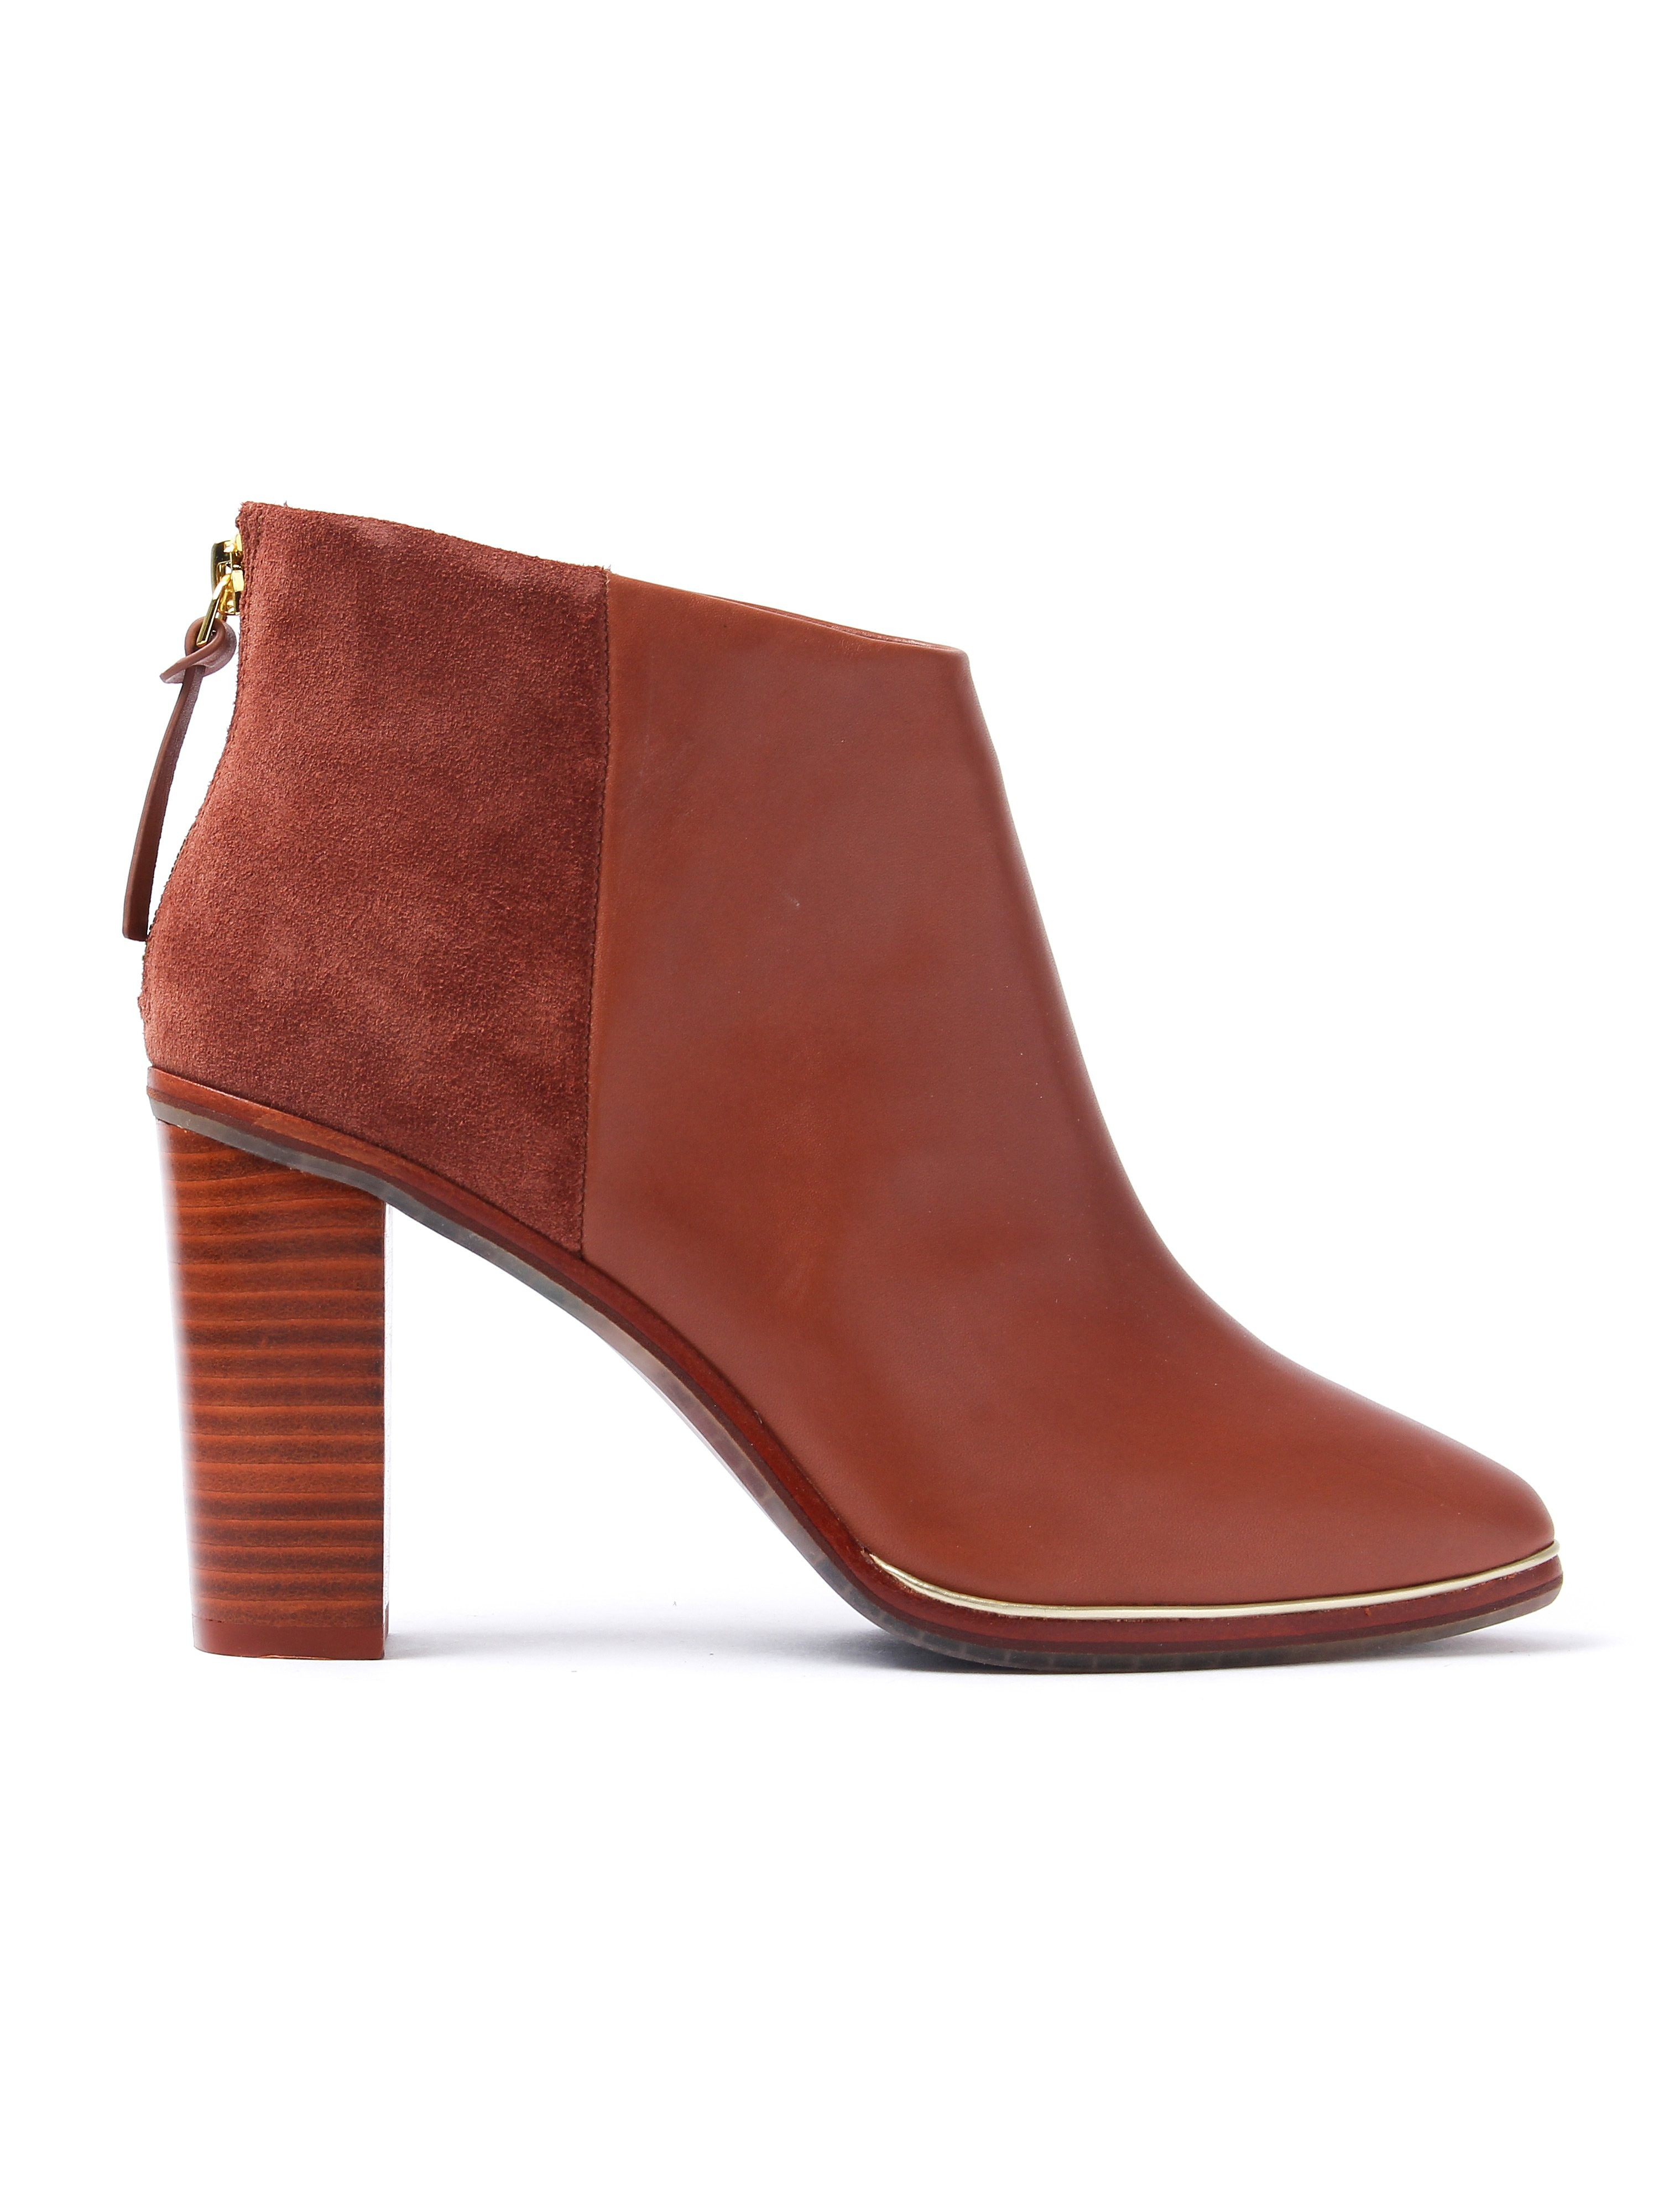 Ted Baker Women's Azalia Boots - Tan Leather Suede